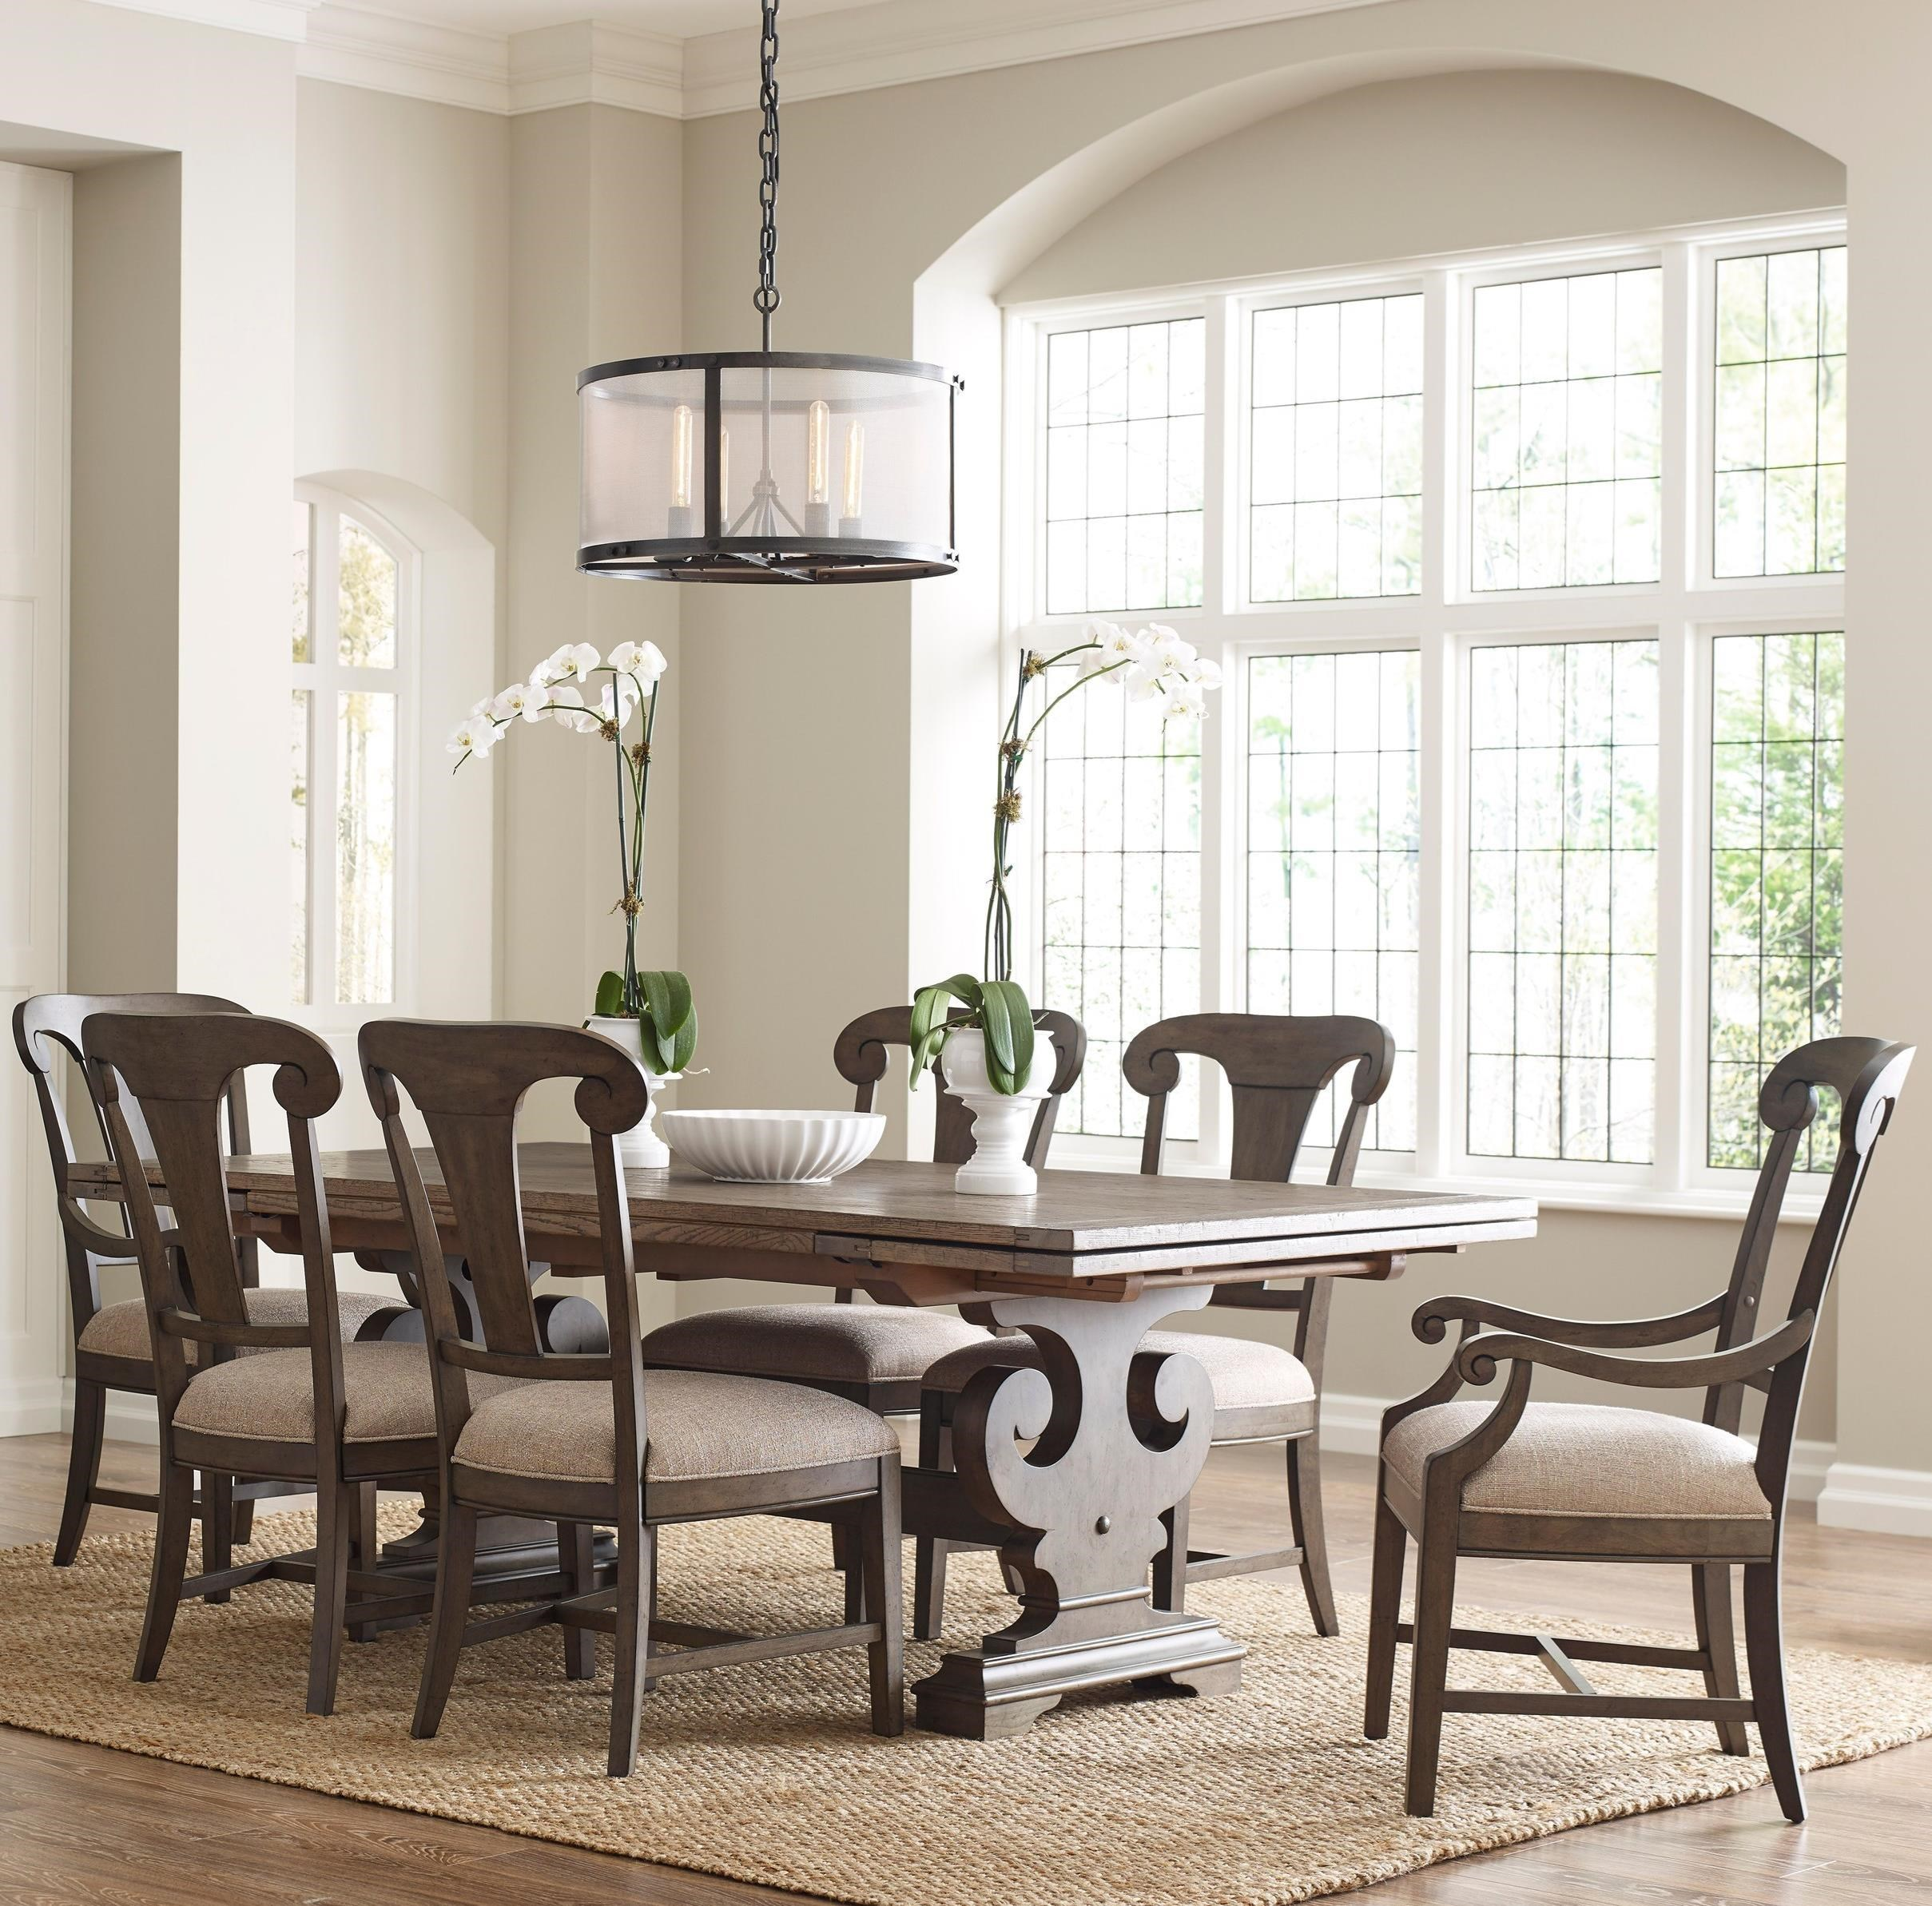 Kincaid Furniture Greyson Seven Piece Dining Set With Crawford Refectory  Table And Fulton Chairs | Adcock Furniture | Dining 7 (or More) Piece Sets